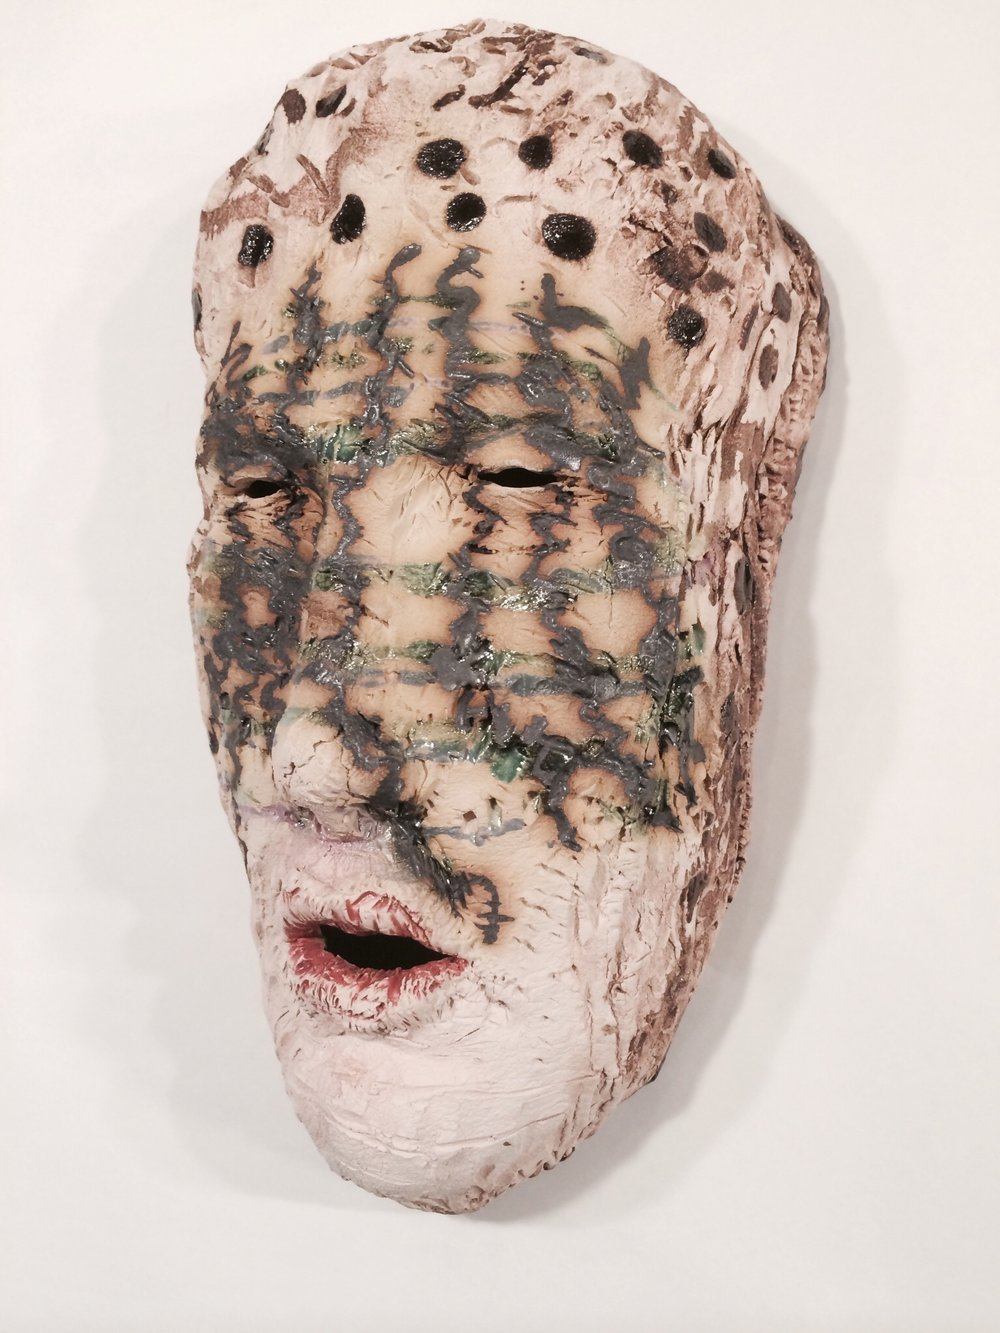 Through The Veil  2014, ceramic, 15x8x6""